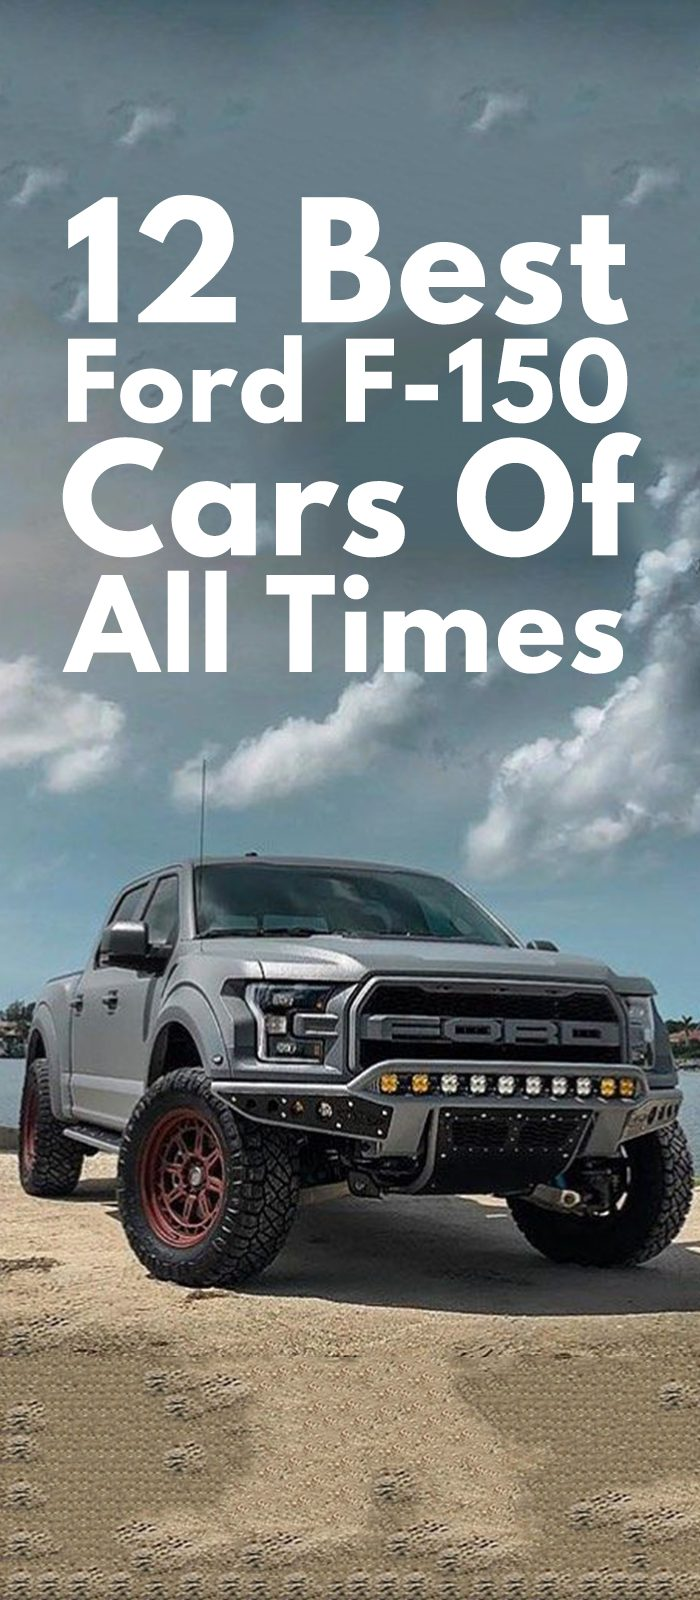 Best Ford F-150 Cars Of All Times.